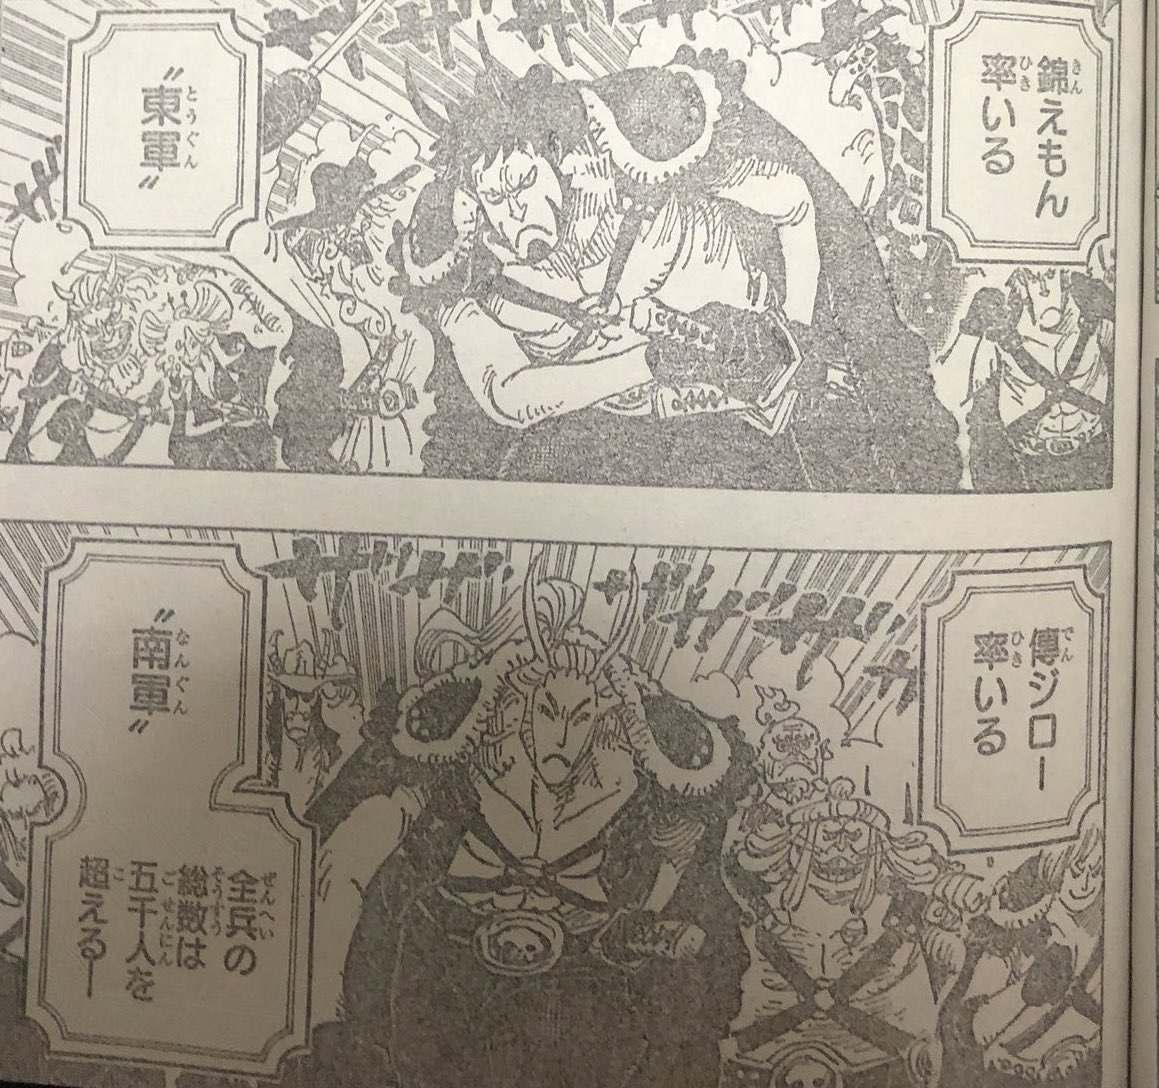 One Piece Spoilers 979 Image2